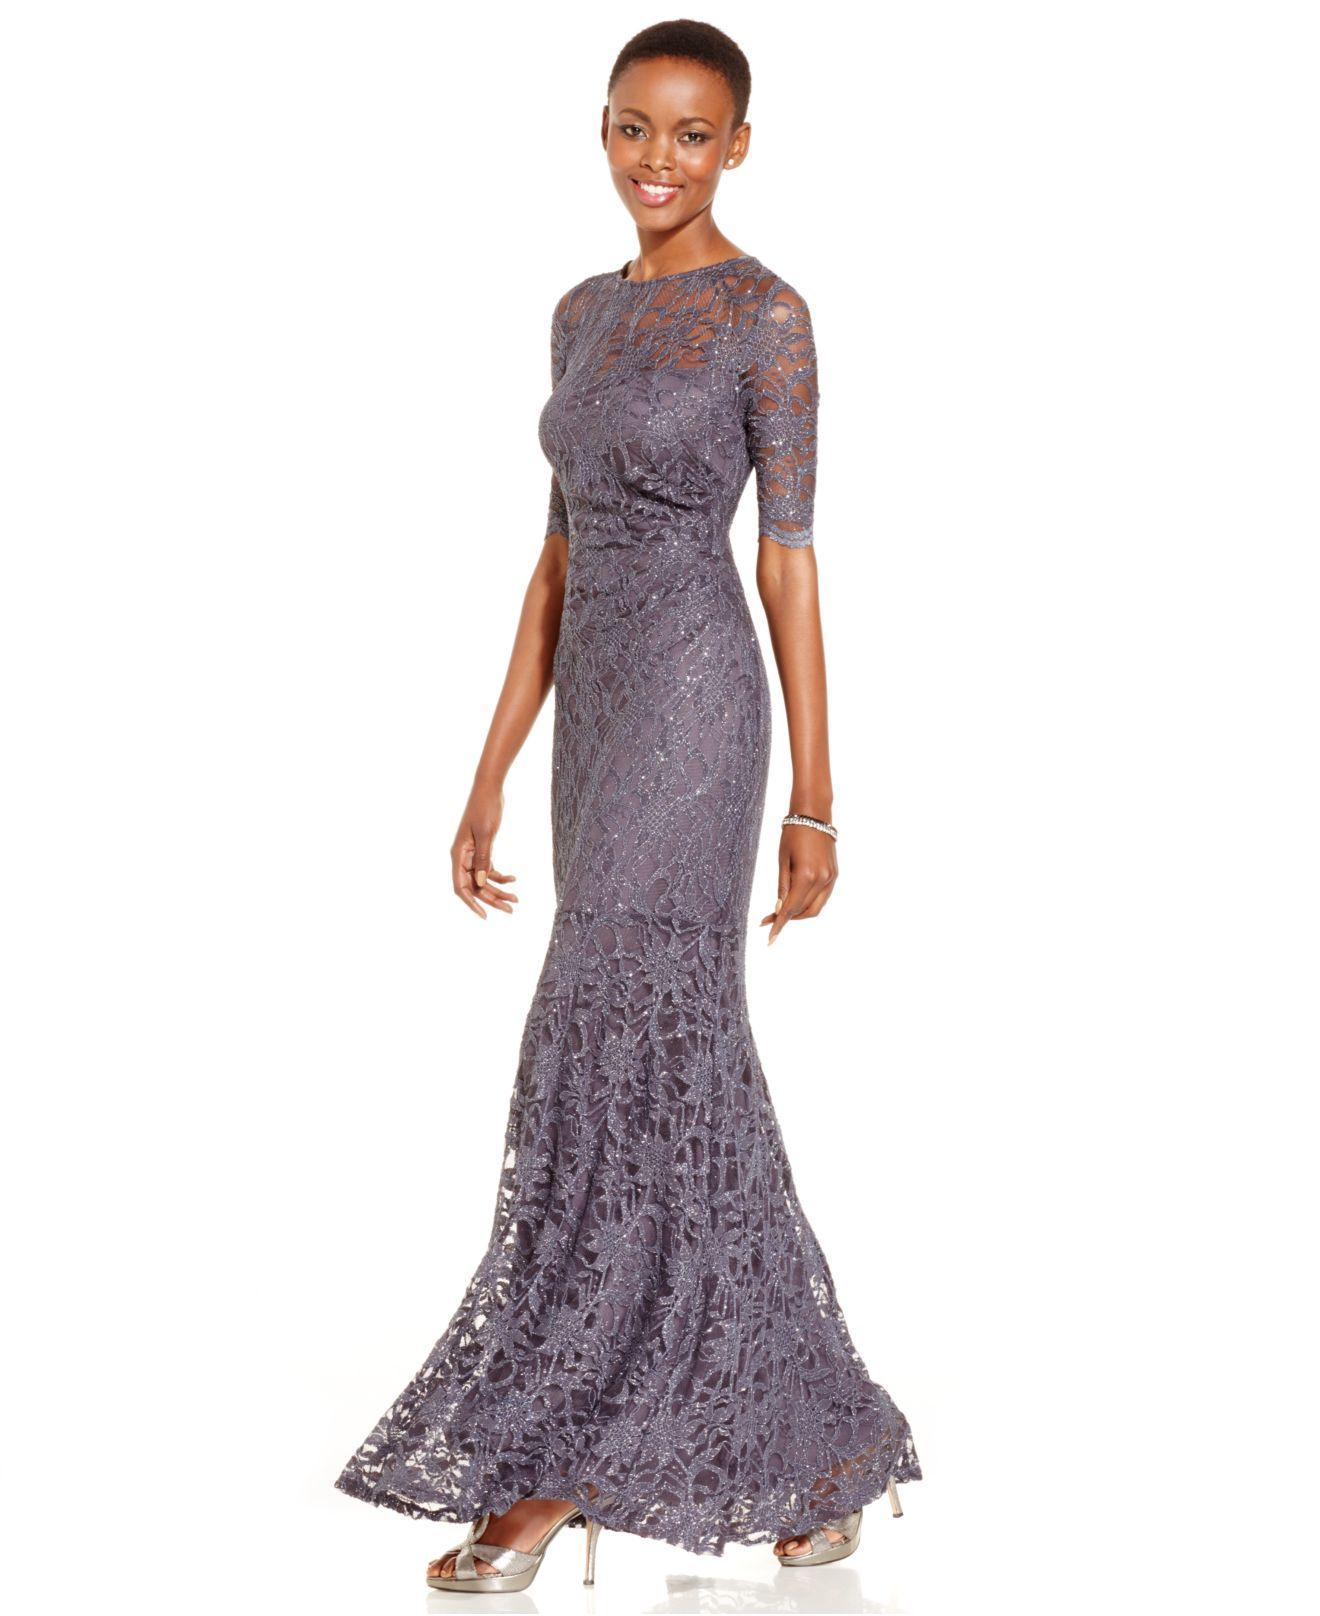 Xscape petite glitter lace mermaid gown in gray steel special